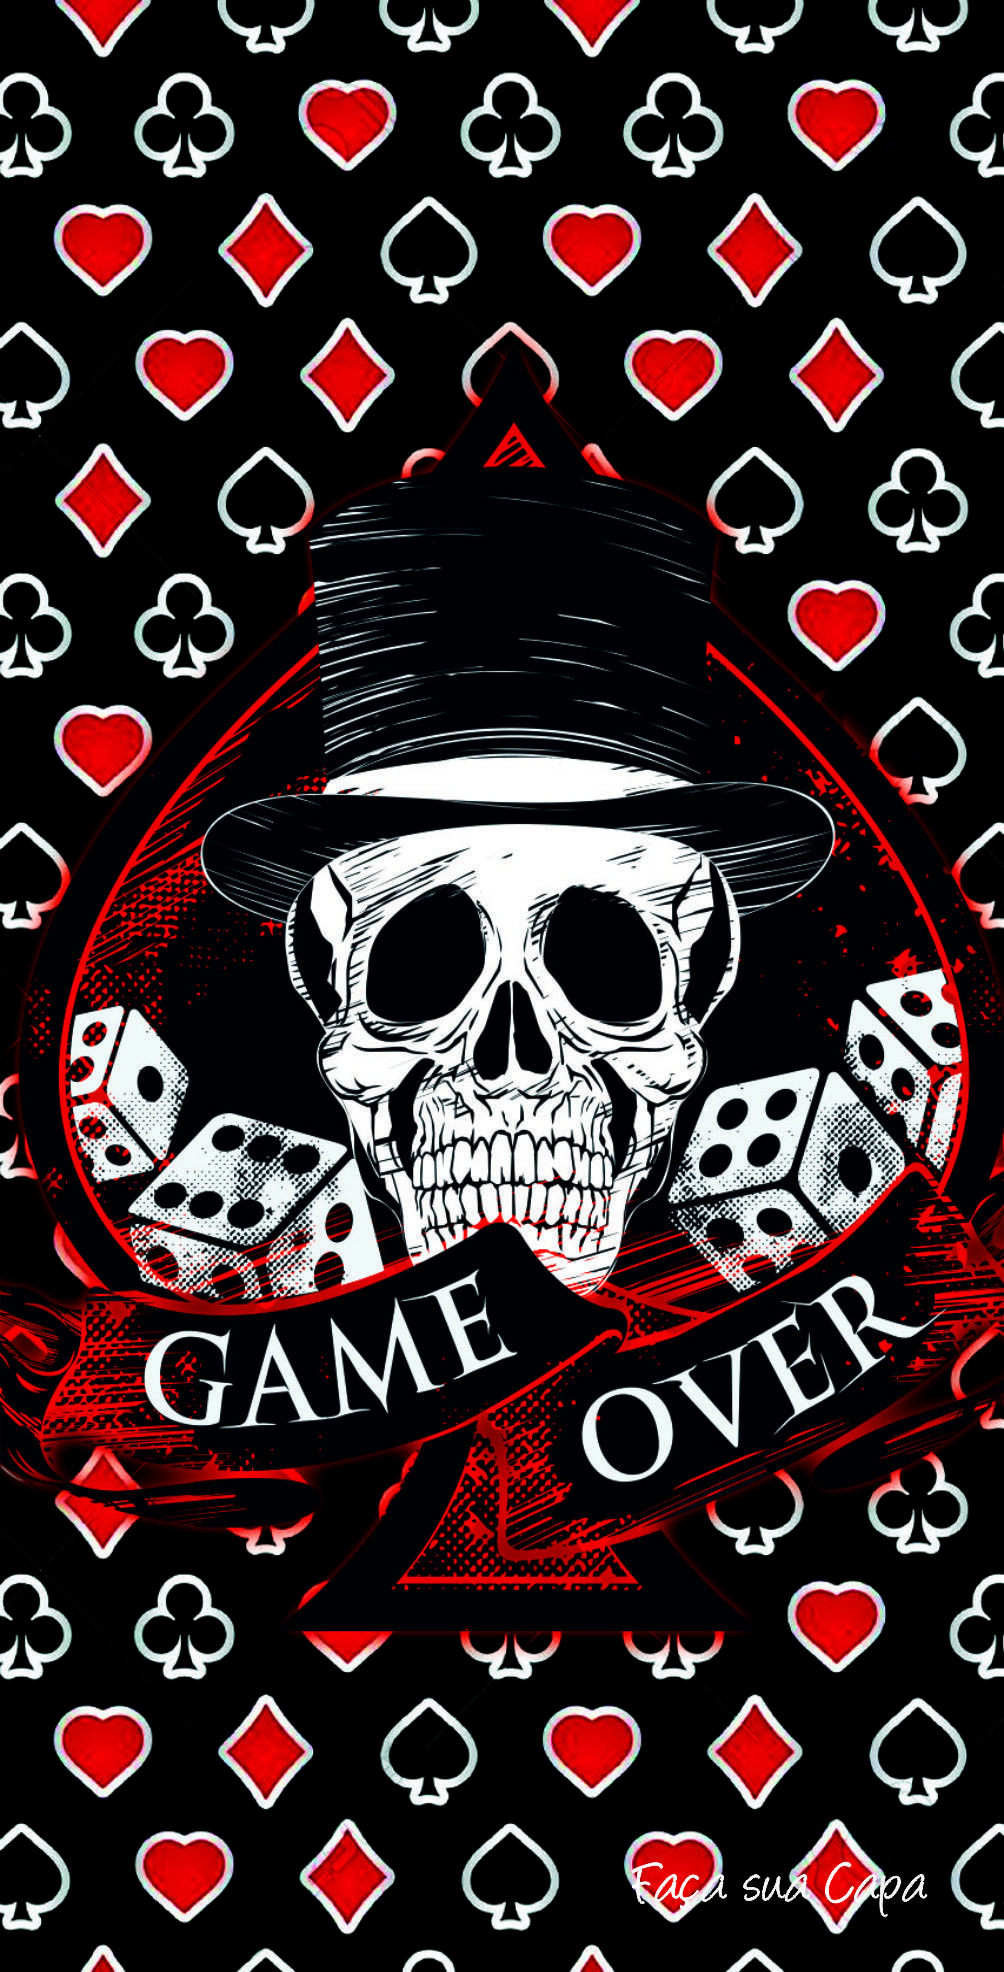 1004x1972 GAME OVER | Cool | Pinterest | Wallpaper, Iphone wallpaper and Skull ...